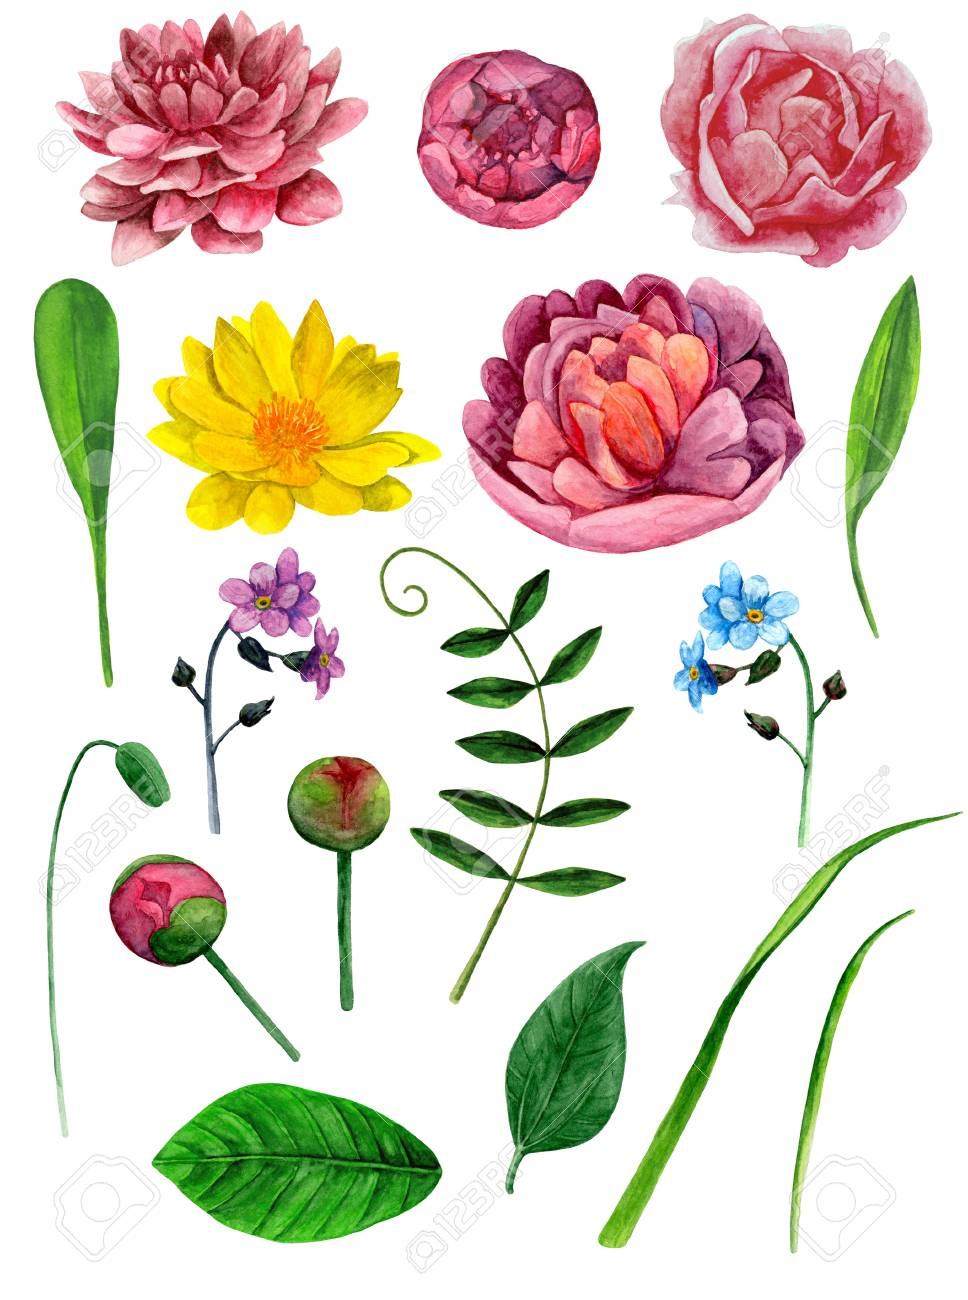 watercolor peonies flowers clip art botanical clipart stock photo rh 123rf com pony clip art pony clip art silhouette